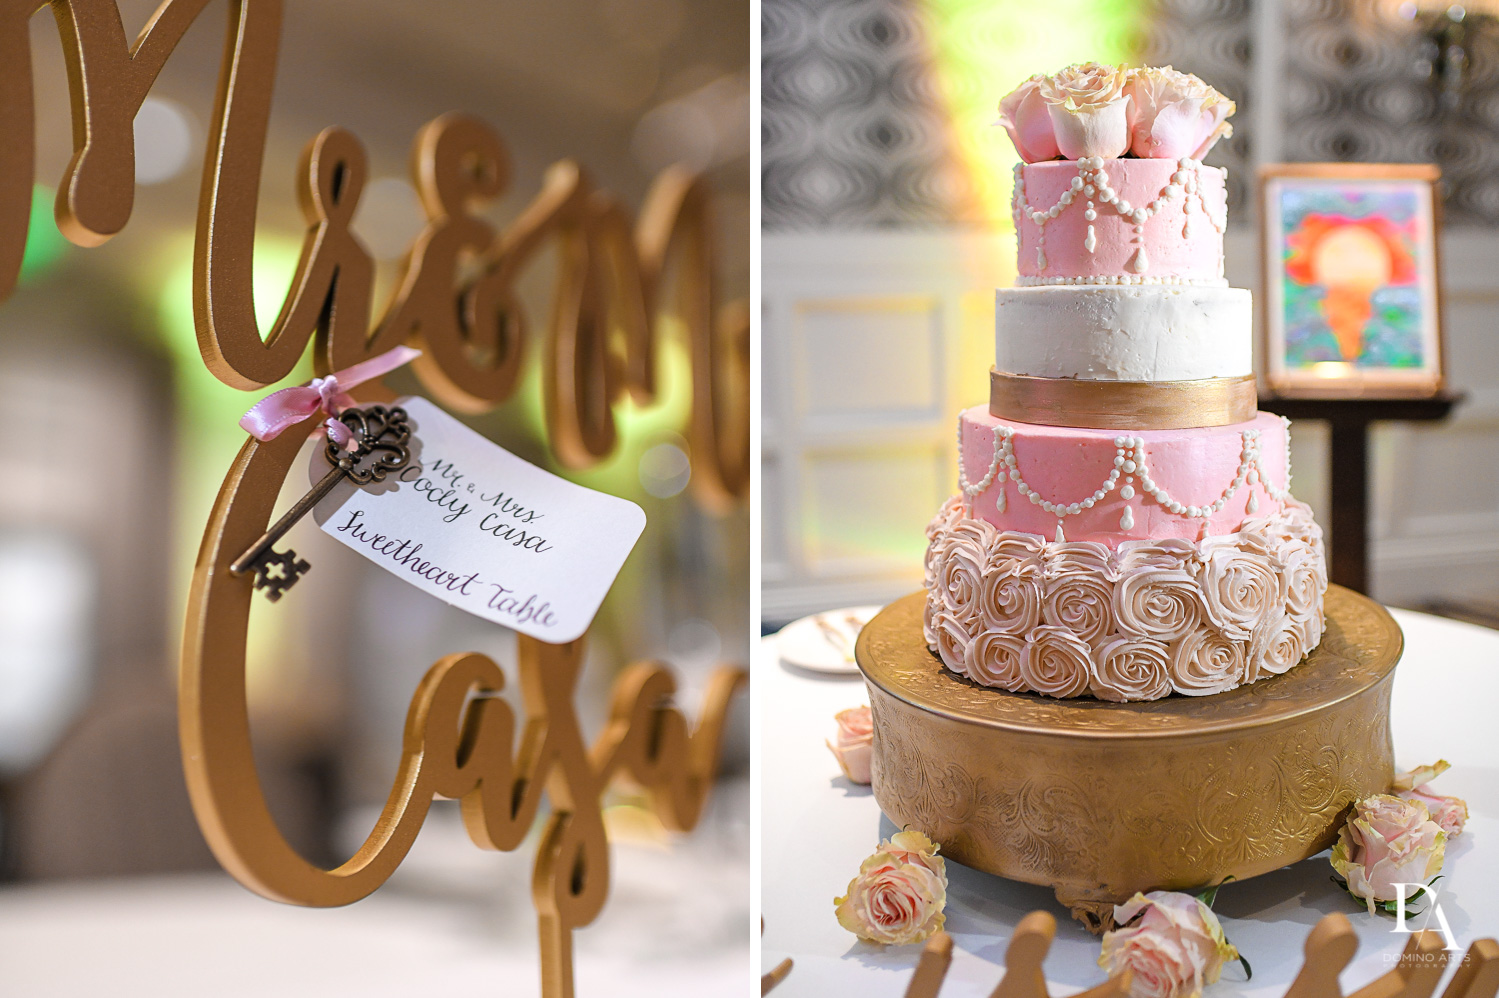 Wedding cake details at Romantic Wedding Woodfield Country Club in Boca Raton, Florida by Domino Arts Photography